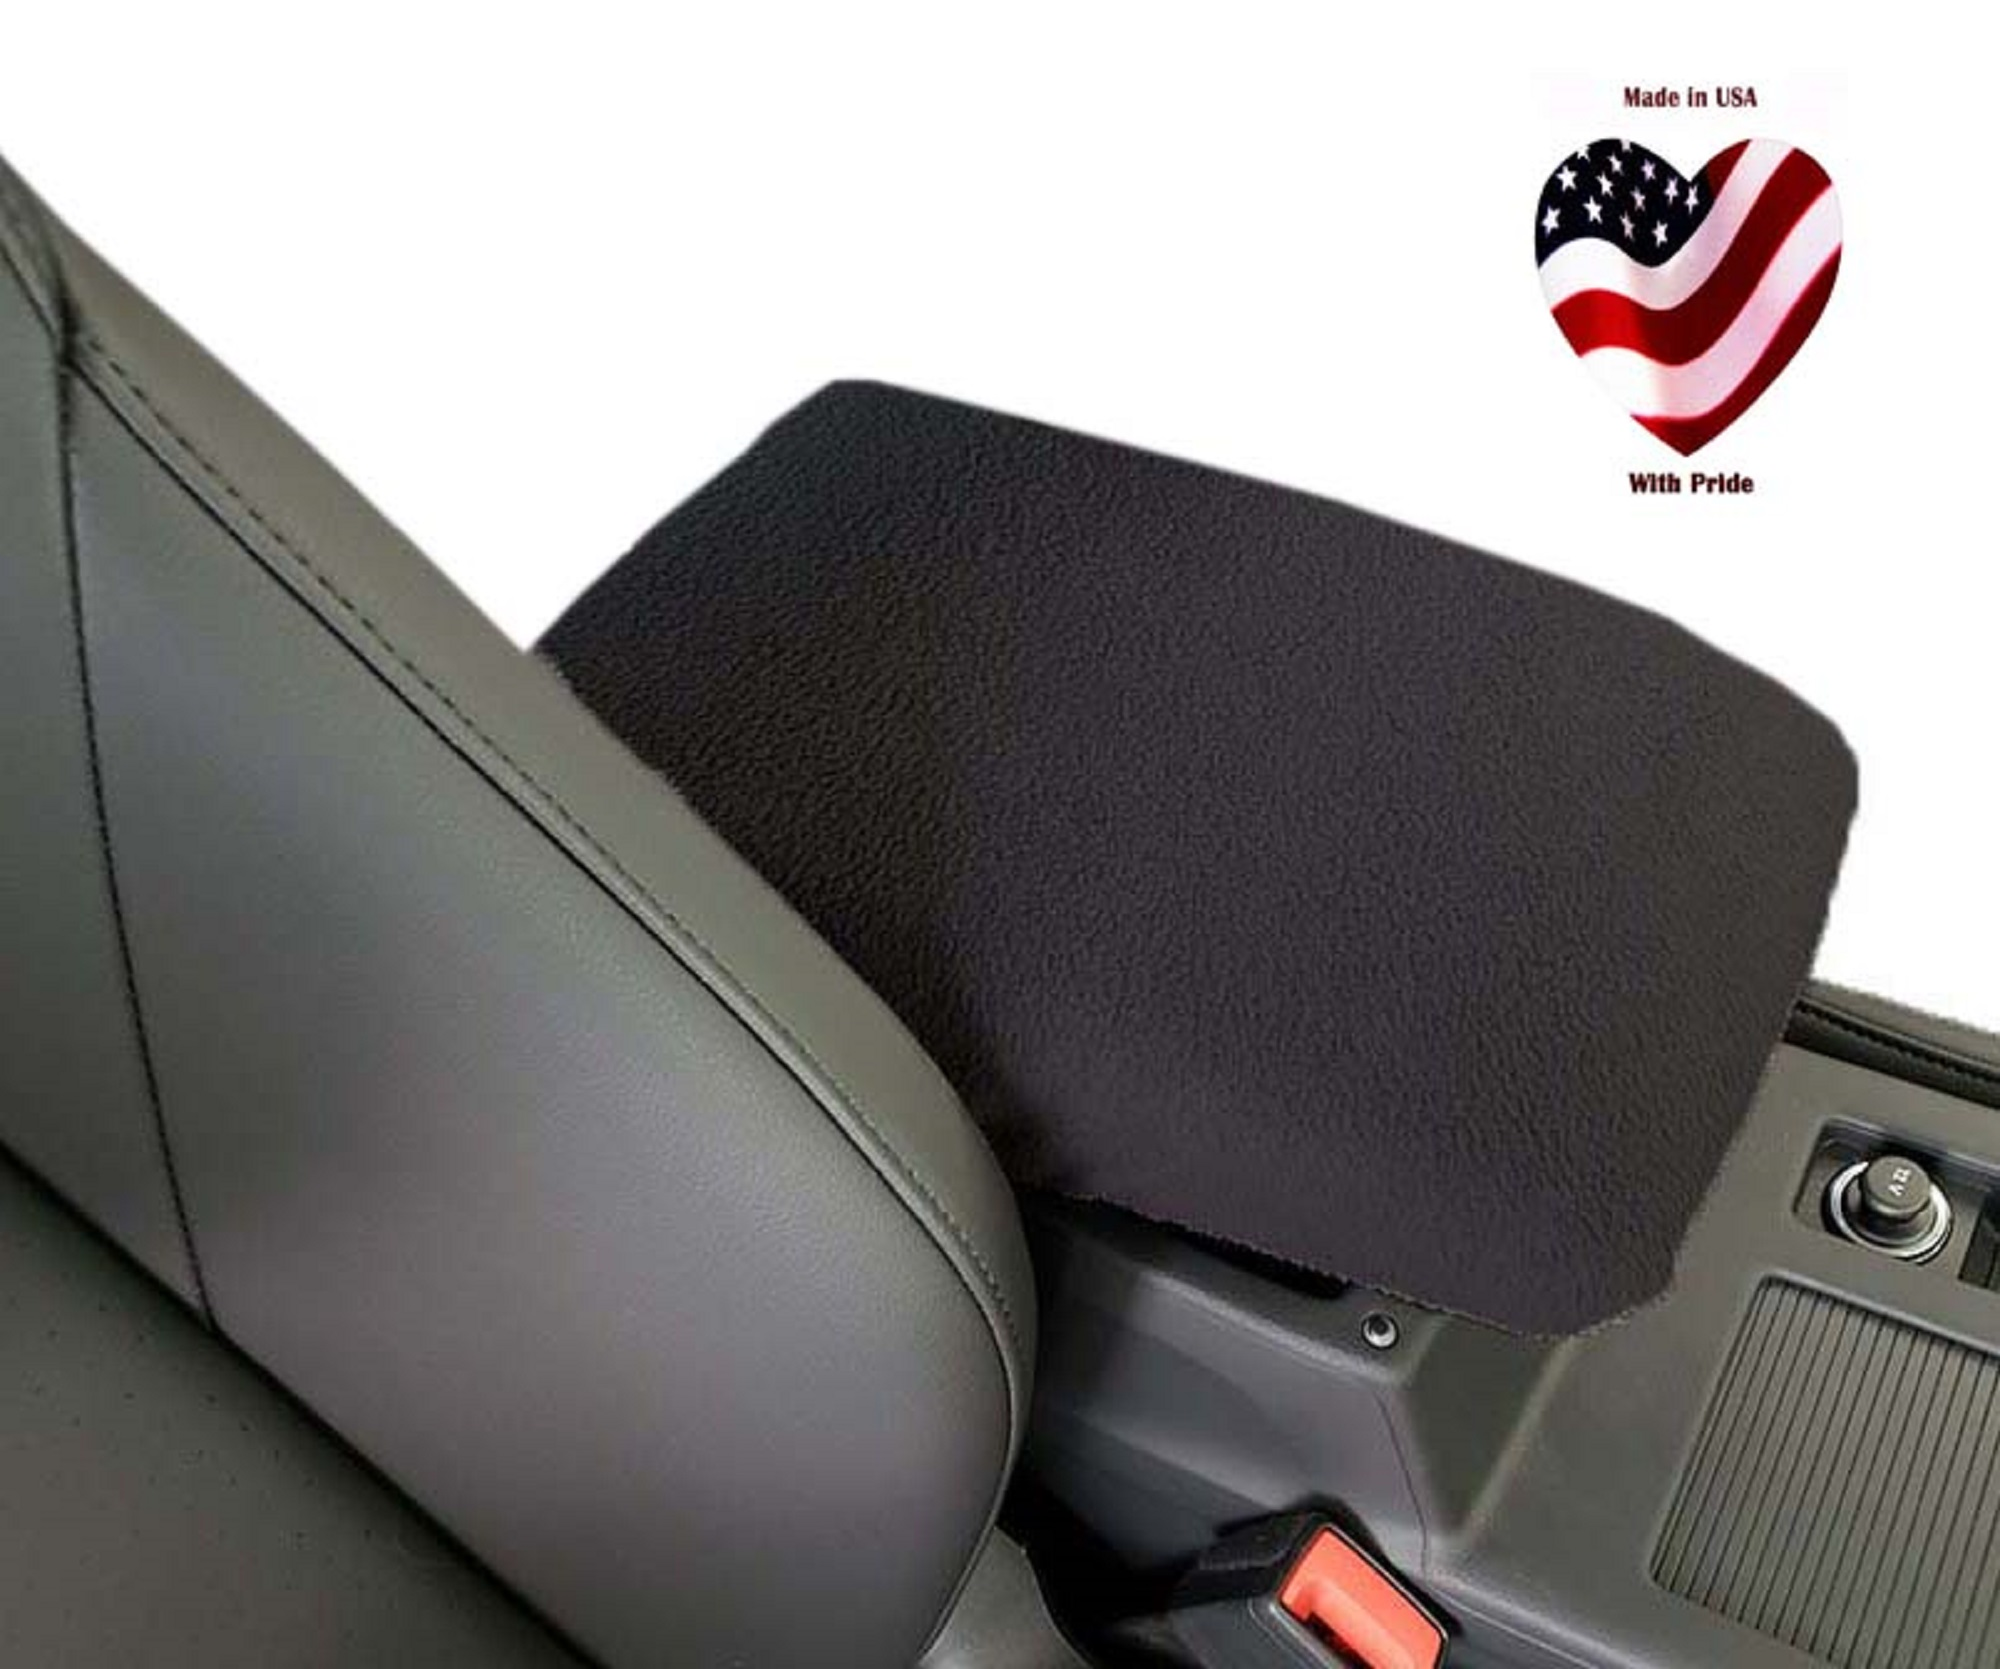 Car Console Covers Plus Fits Chevy Tahoe SUV 2016-2019 Fleece Armrest Cover for Fixed Double Cup Holder Center Console Lid Made in USA